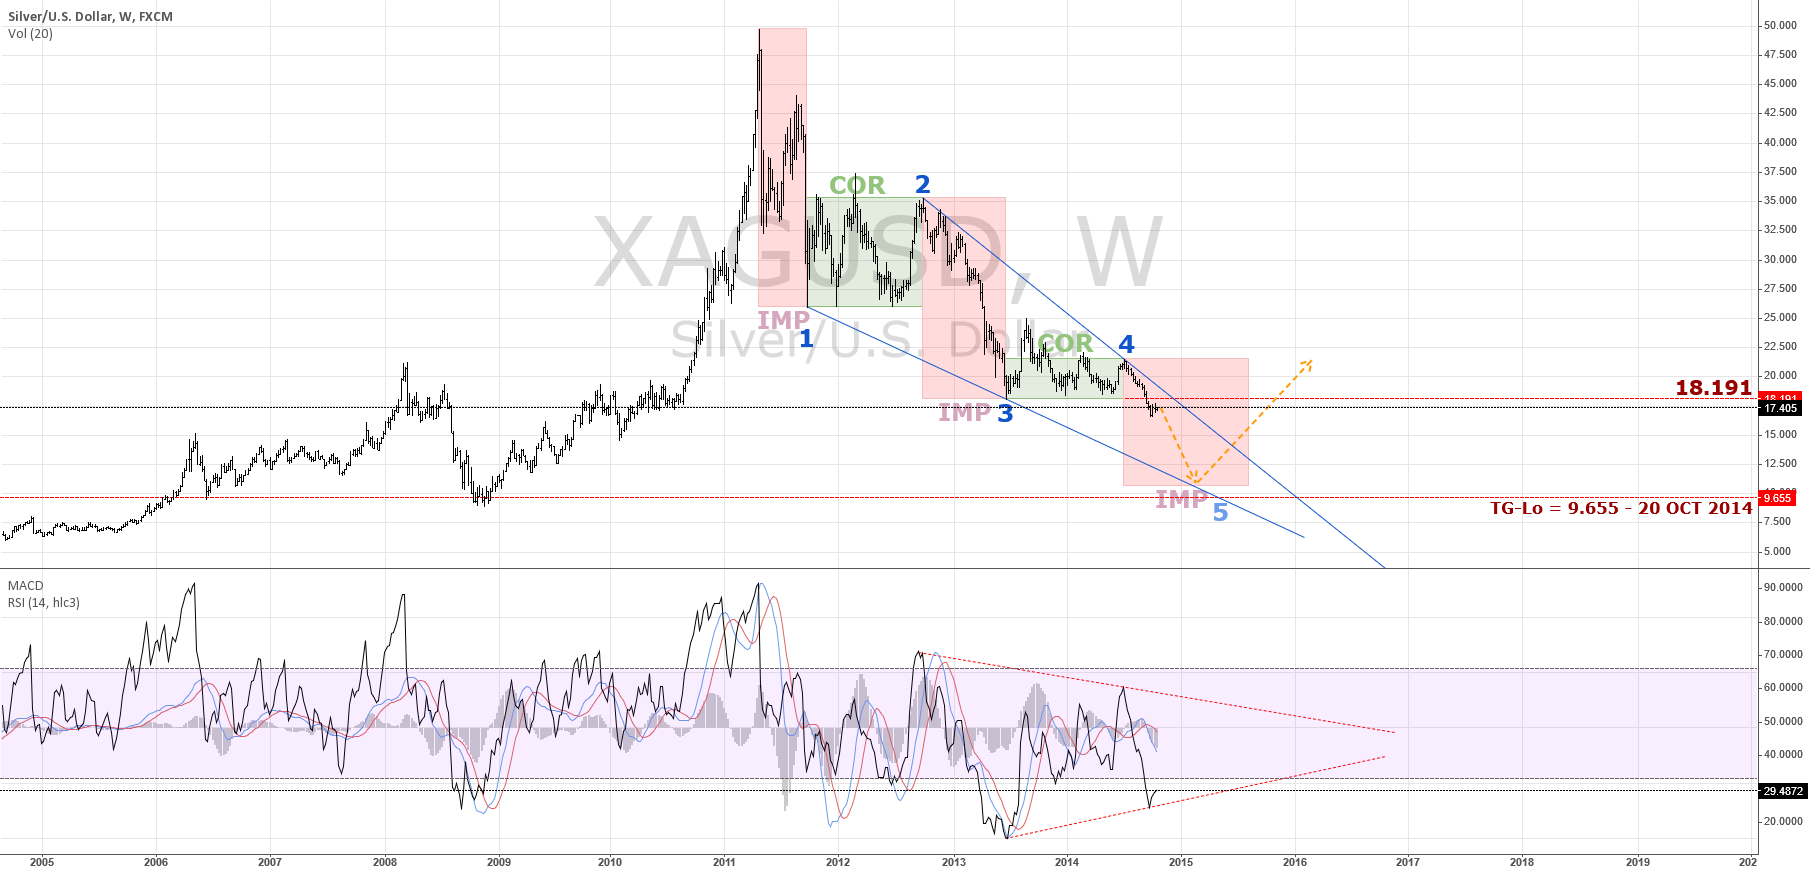 Silver Lining Up For Dull Move | $XAG $USD $SILV #silver $XAU